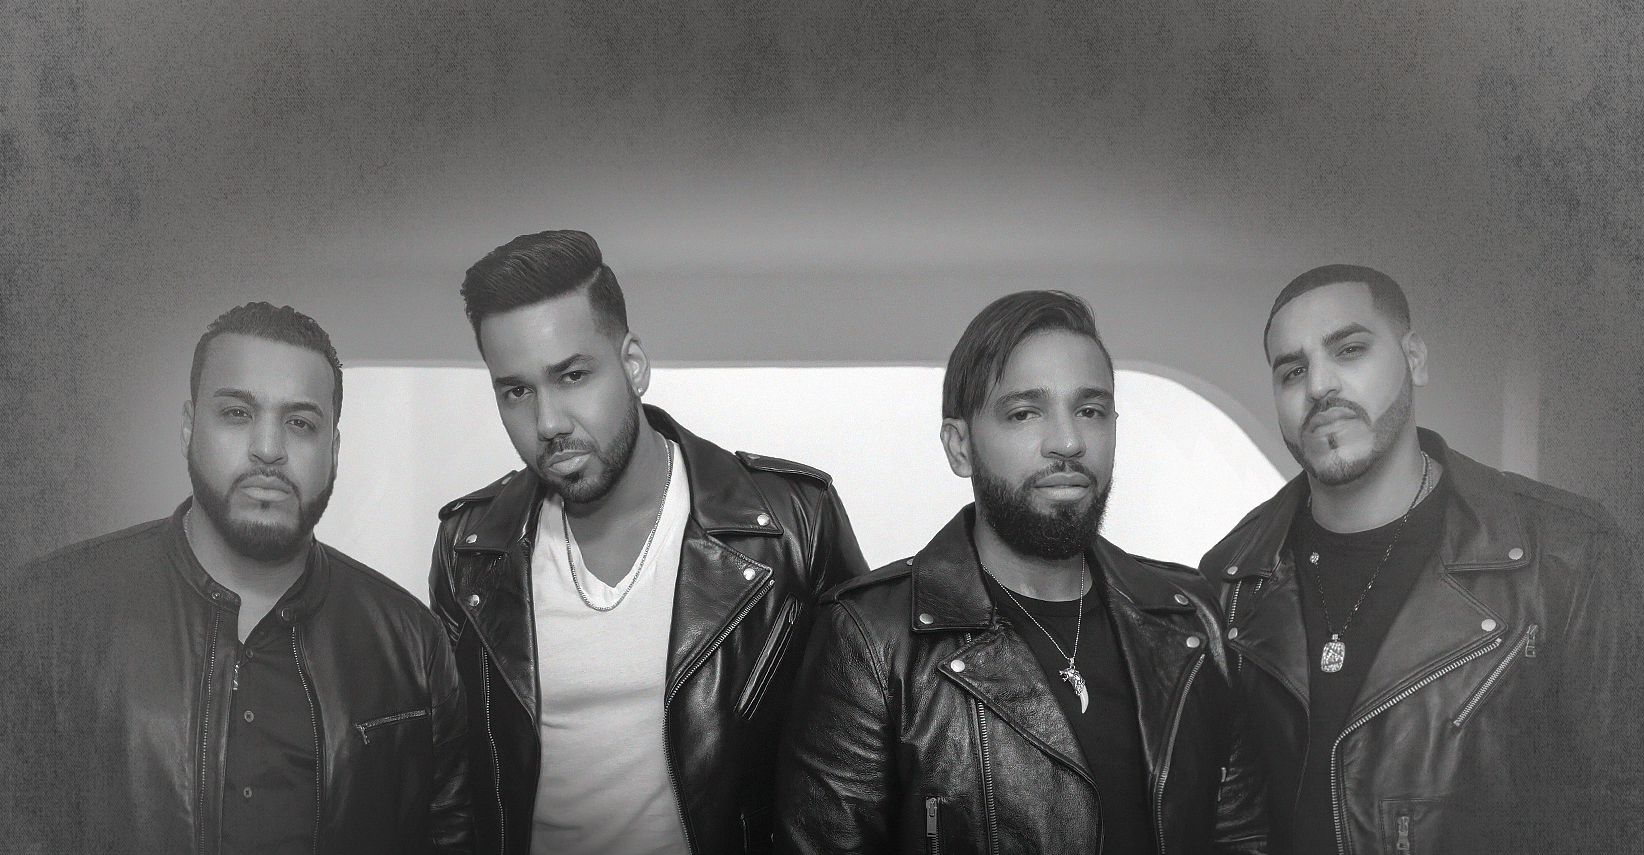 The First Aventura Song in 10 Years Has Finally Arrived